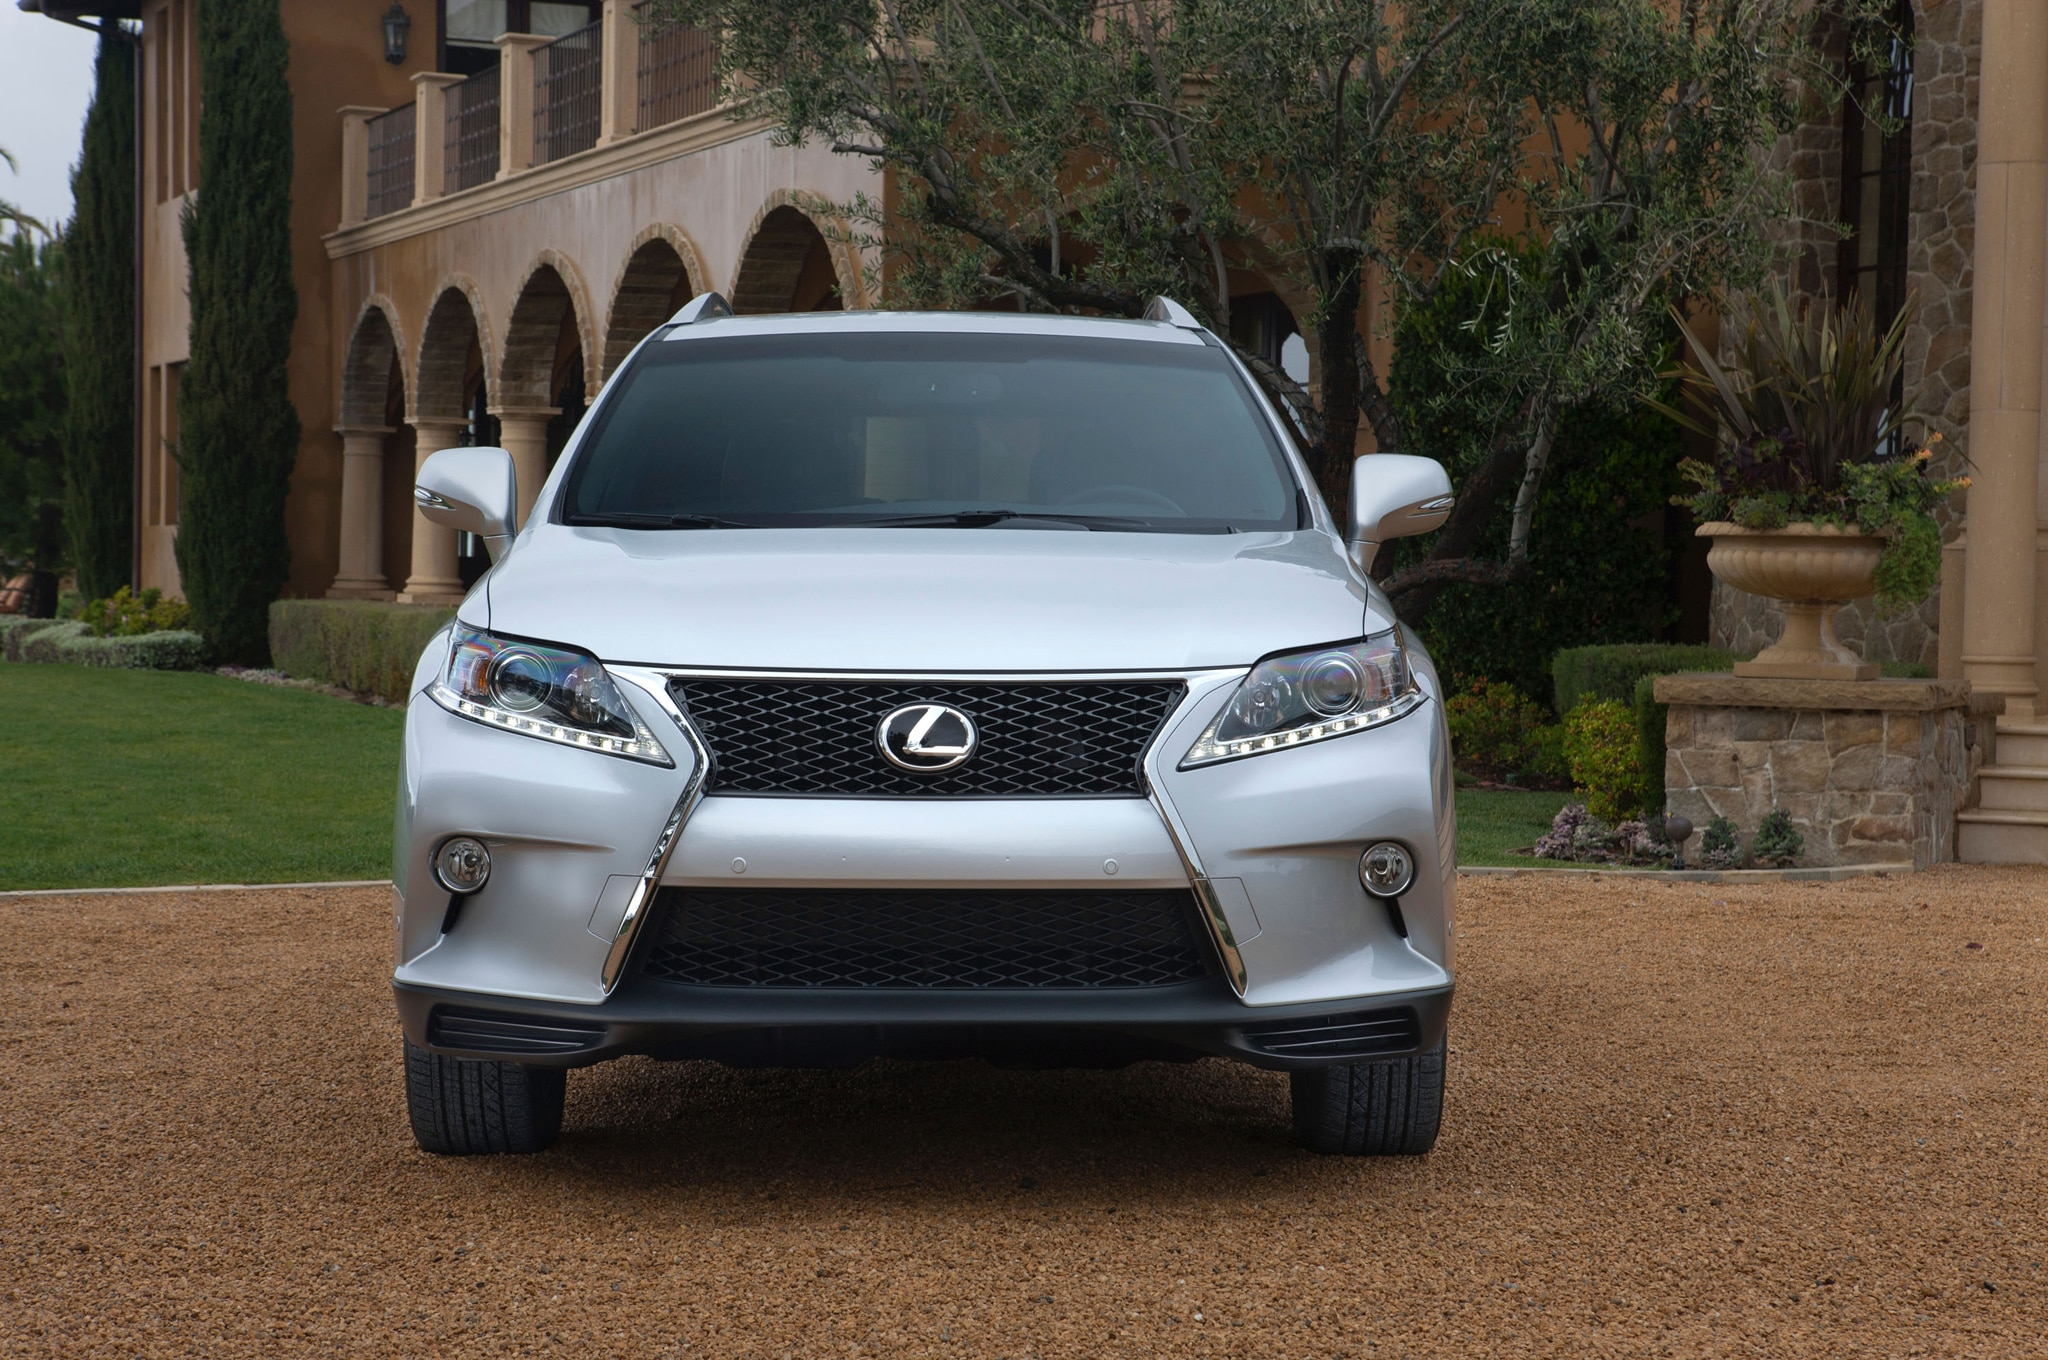 pin suv products rx love pinterest i lexus youtube